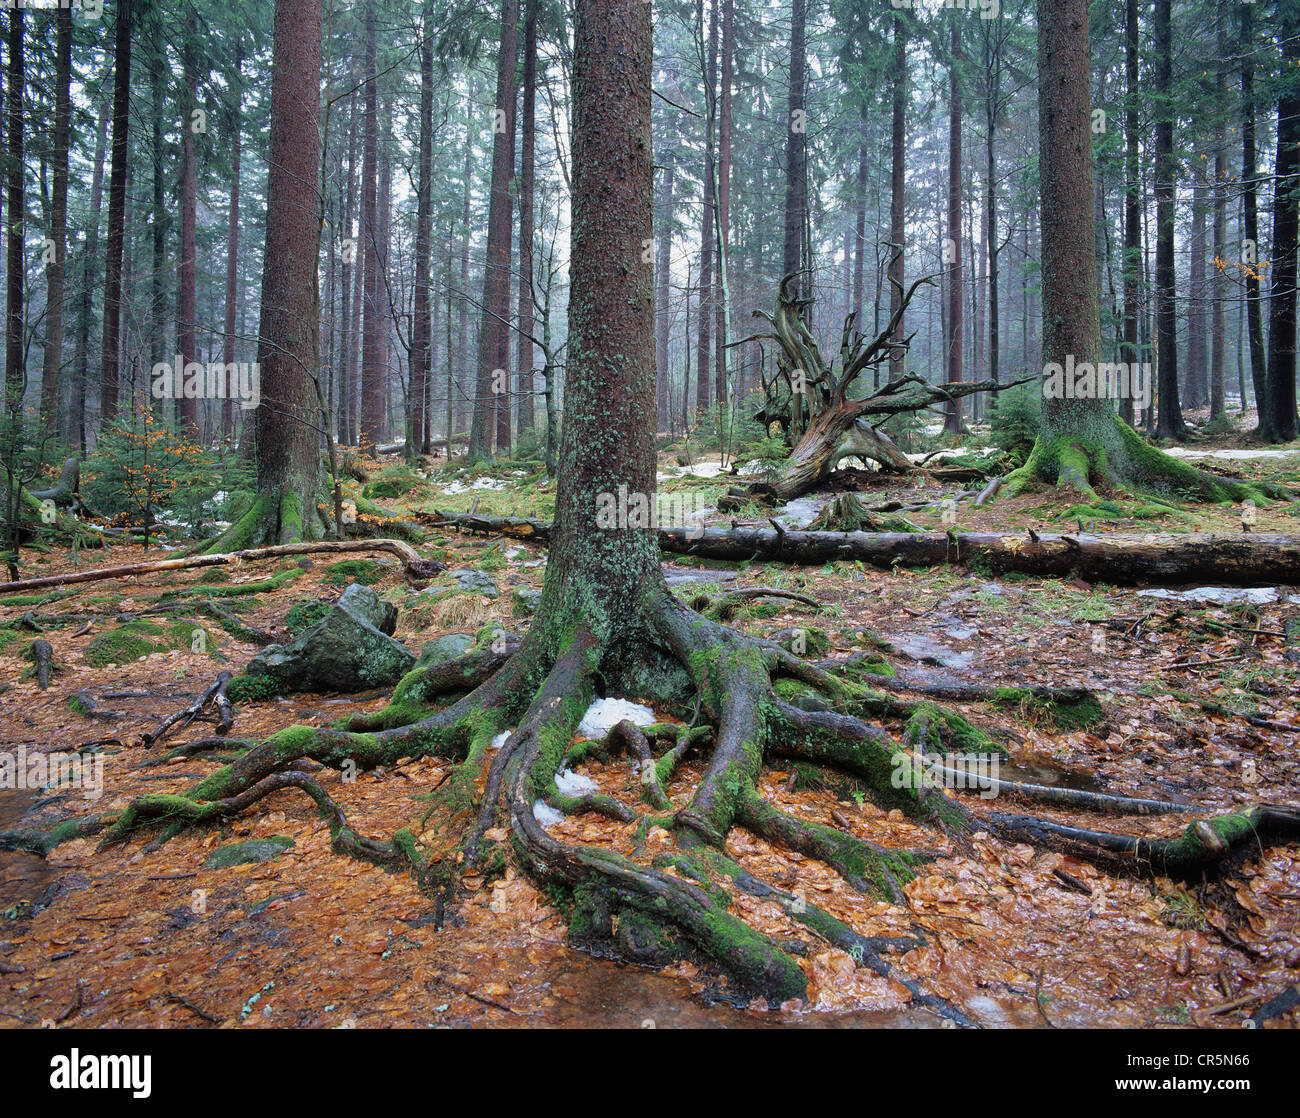 Forest with Norway spruce trees (Picea abies) and dead wood, remnants of snow, Bavarian Forest National Park, Bavaria - Stock Image